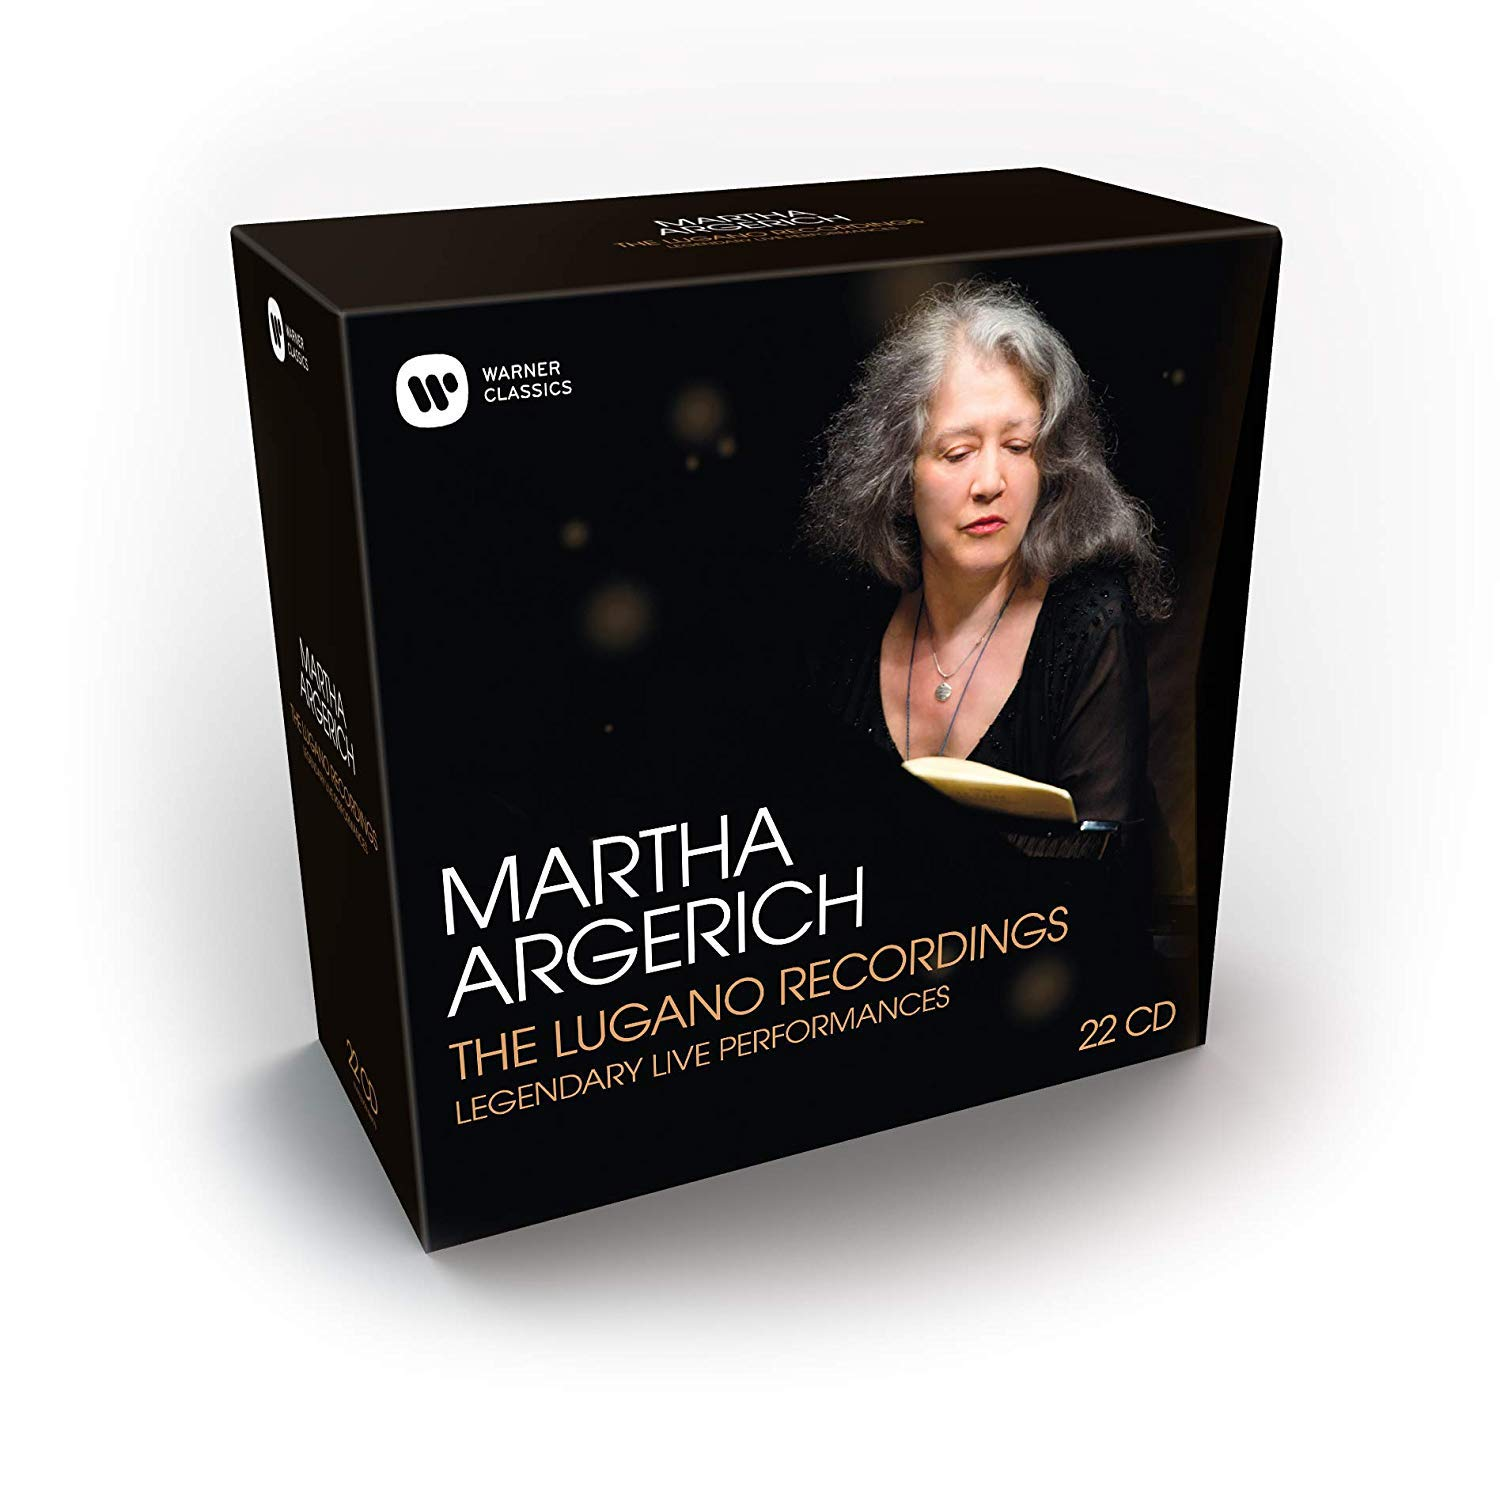 CD : Martha Argerich - Lugano Recordings (20PC)